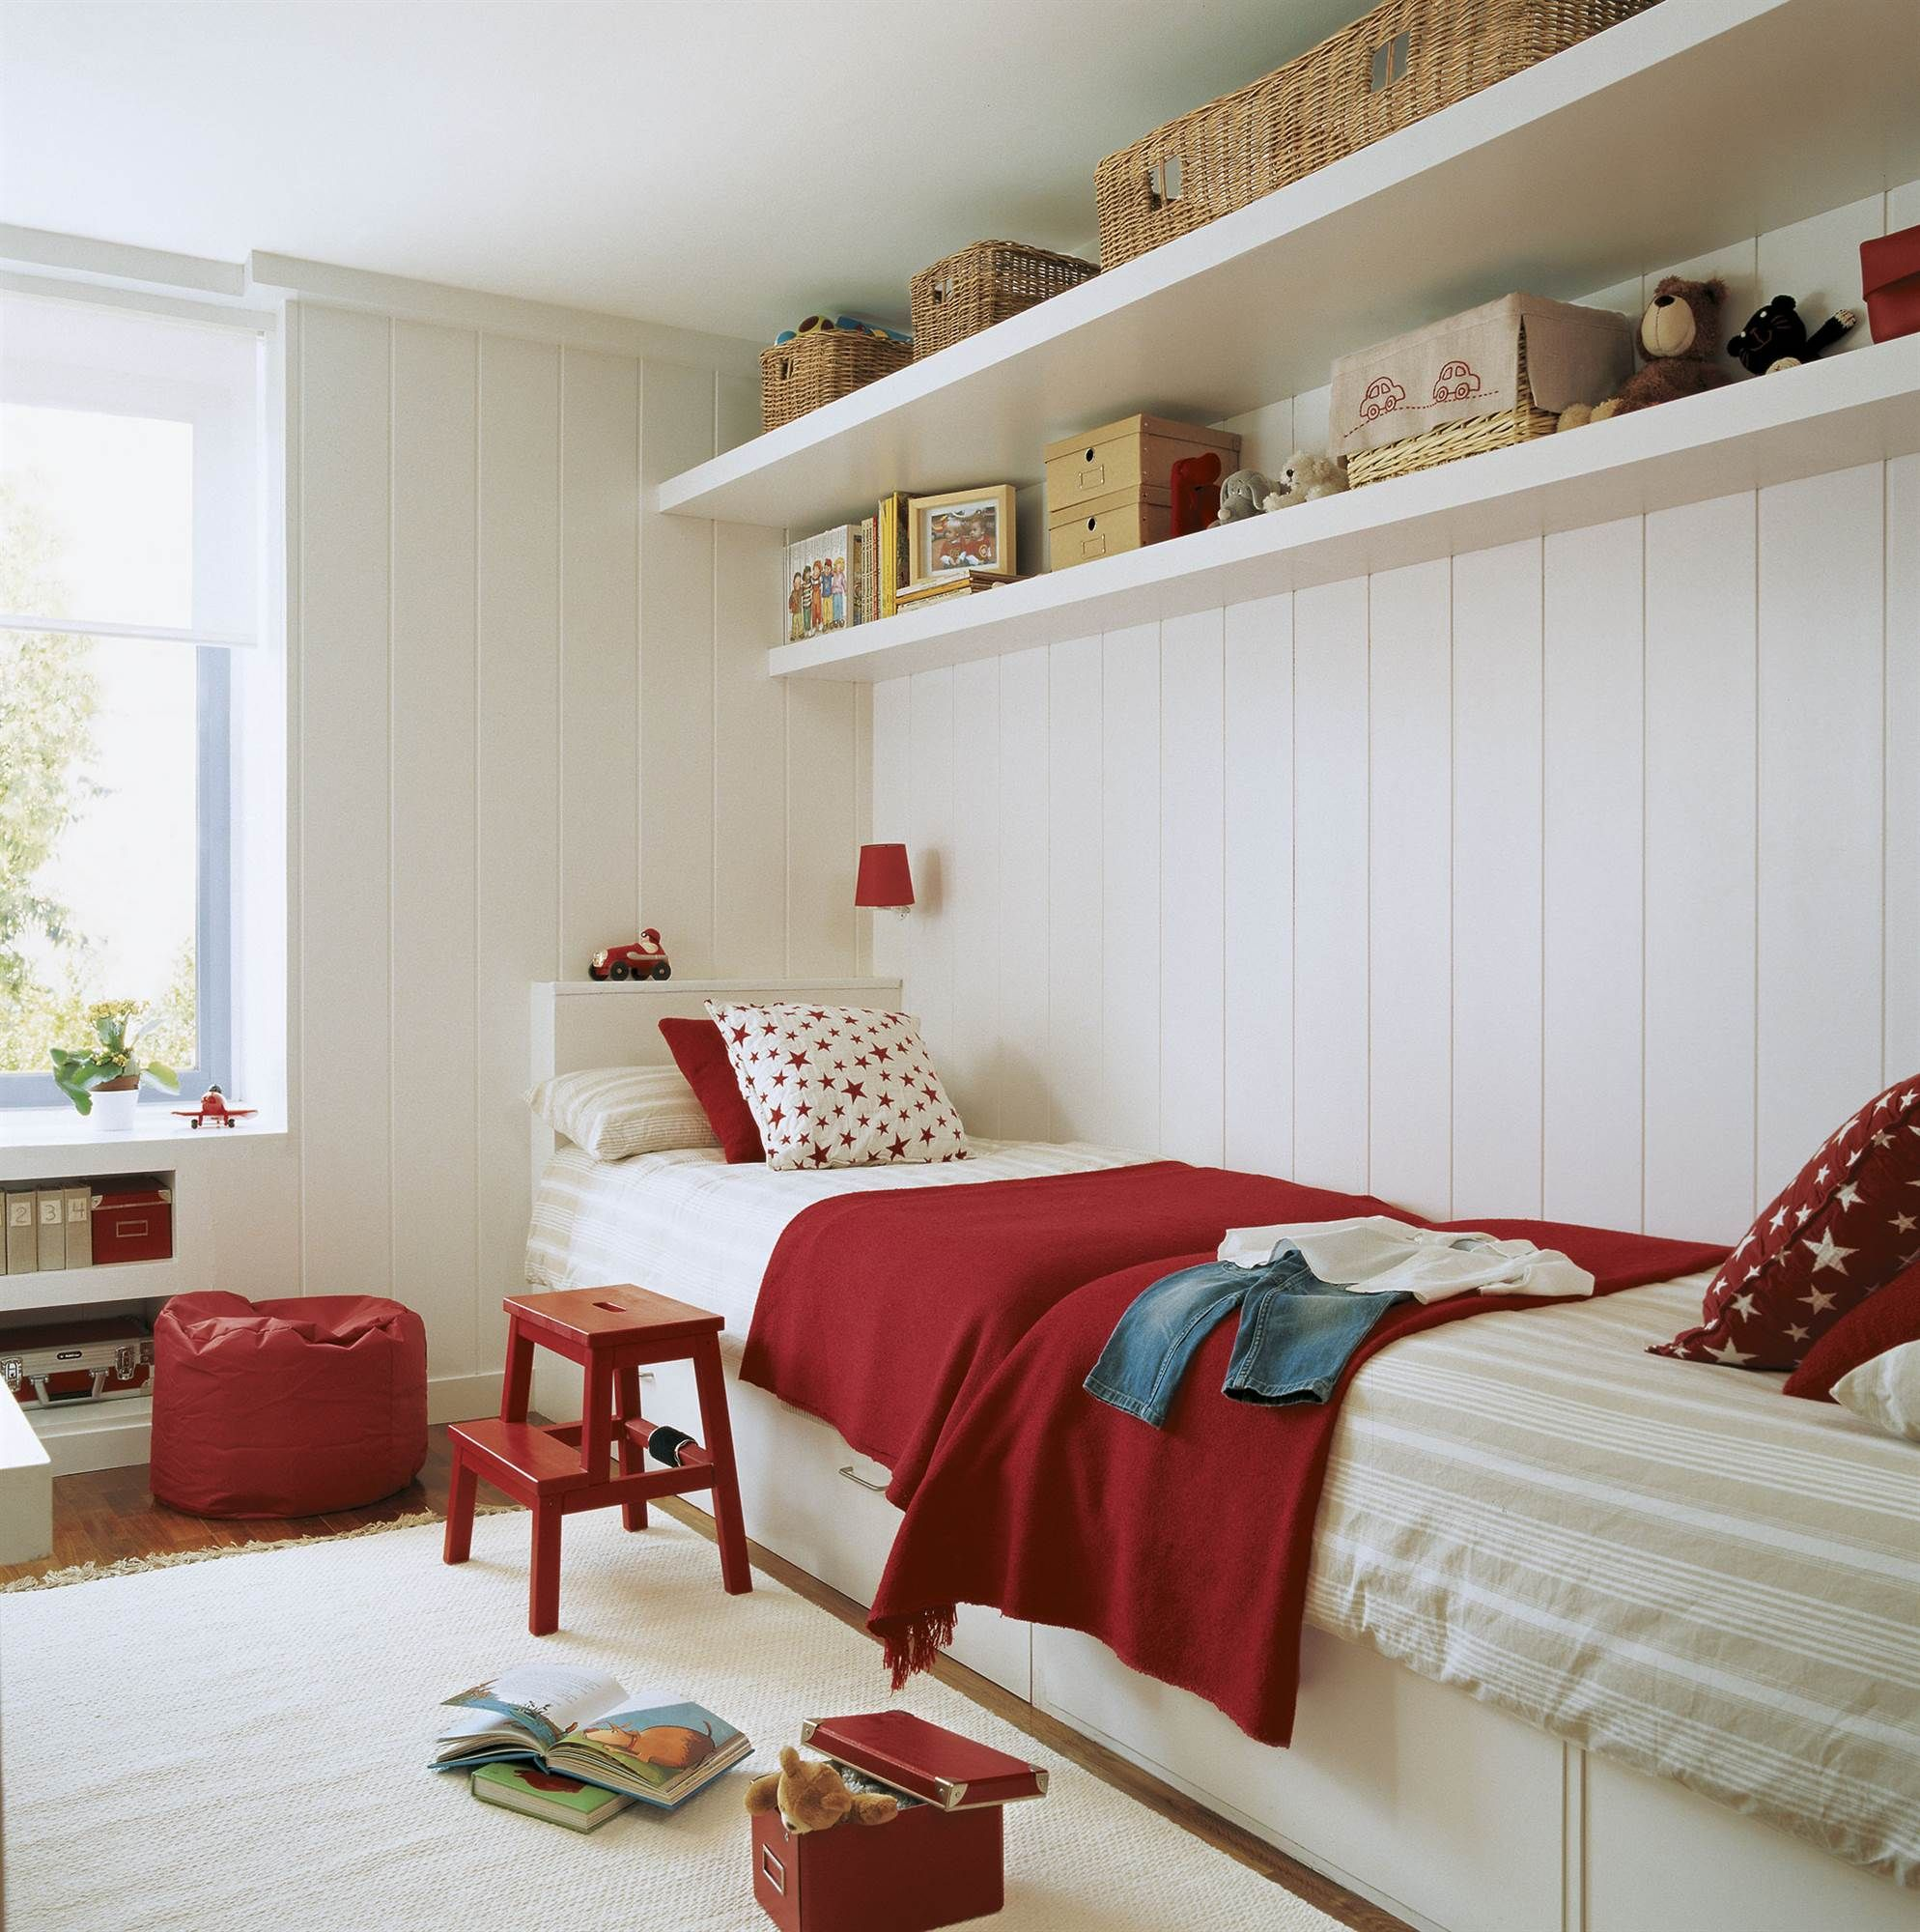 Dormitorios Infantiles Decoracion Actual Y Alegre Cortinas Pinterest